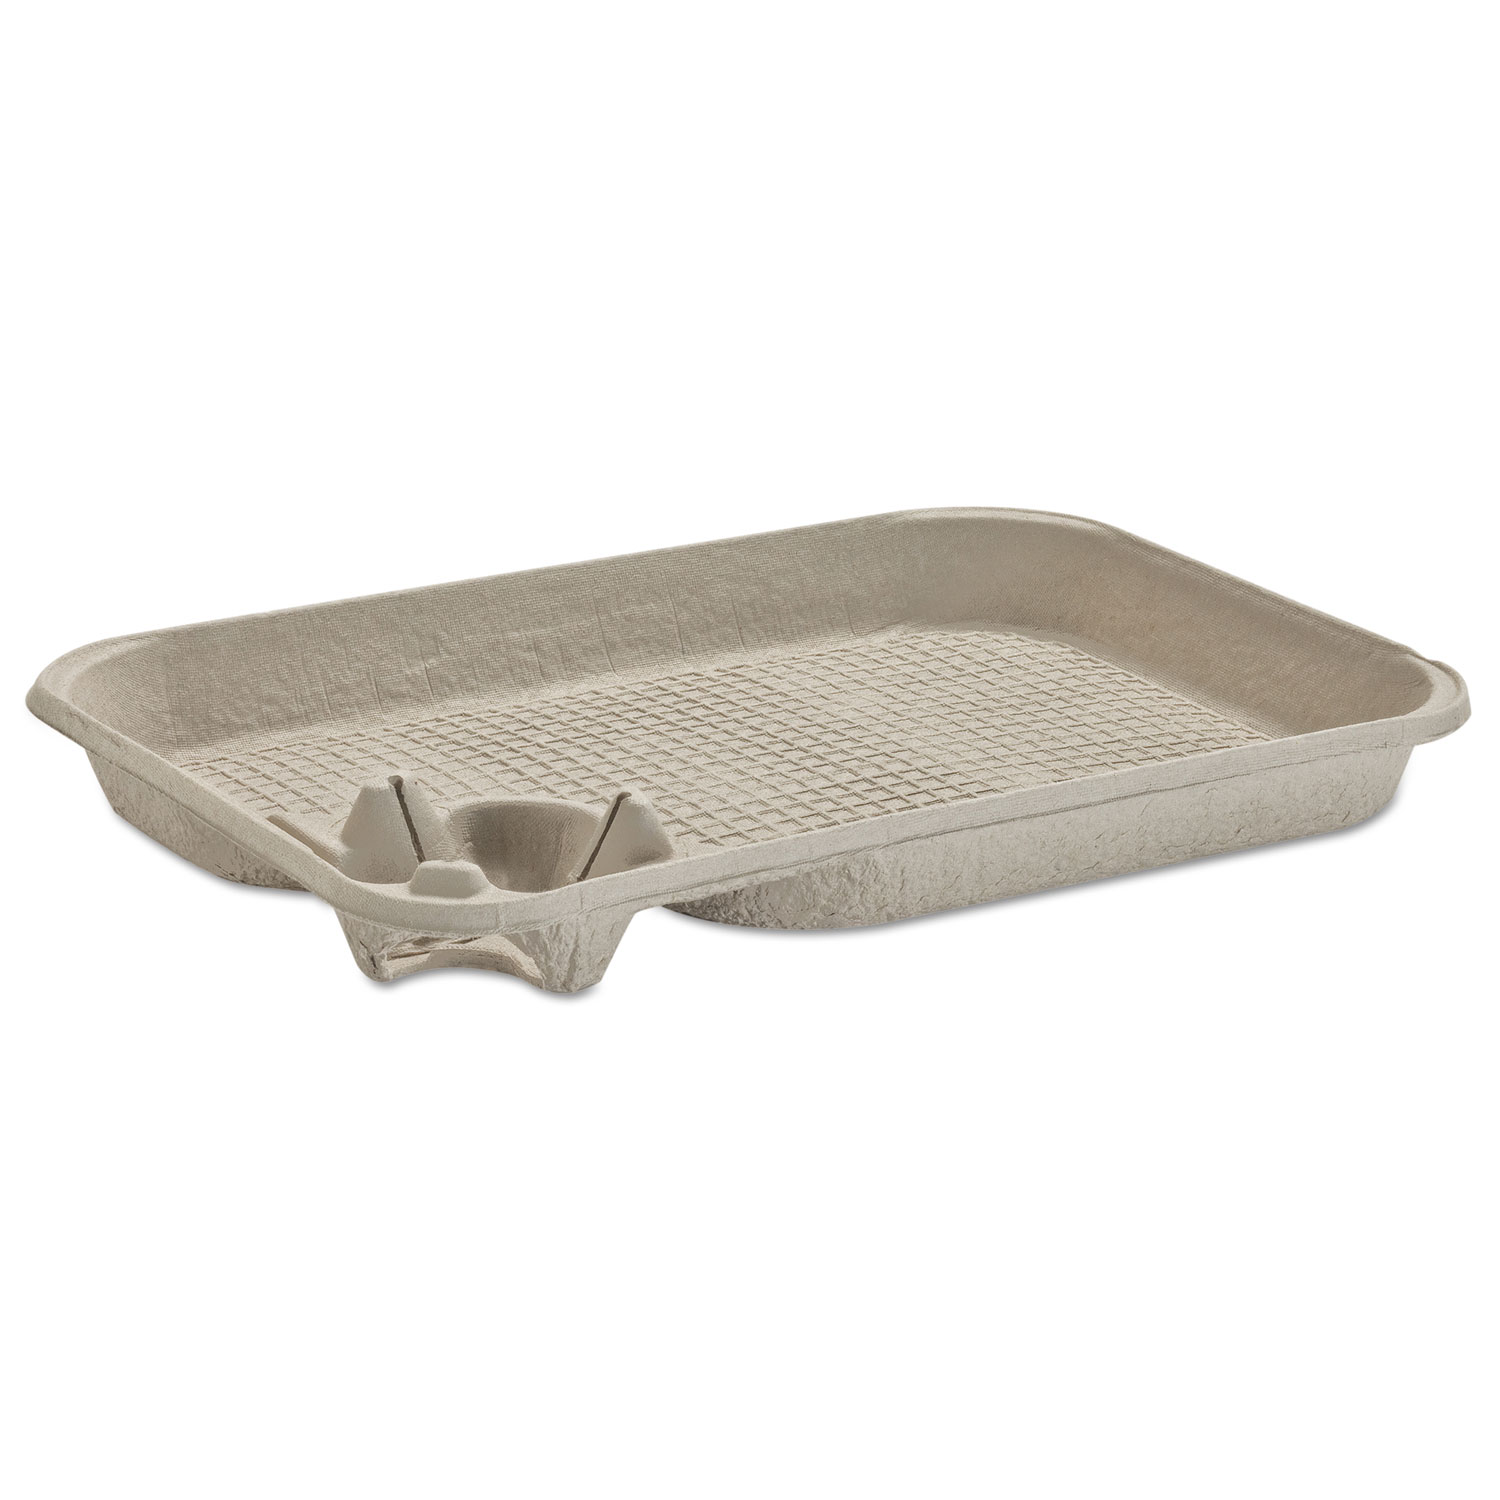 StrongHolder Molded Fiber Cup/Food Tray, 8-22oz, One Cup, 200/Carton